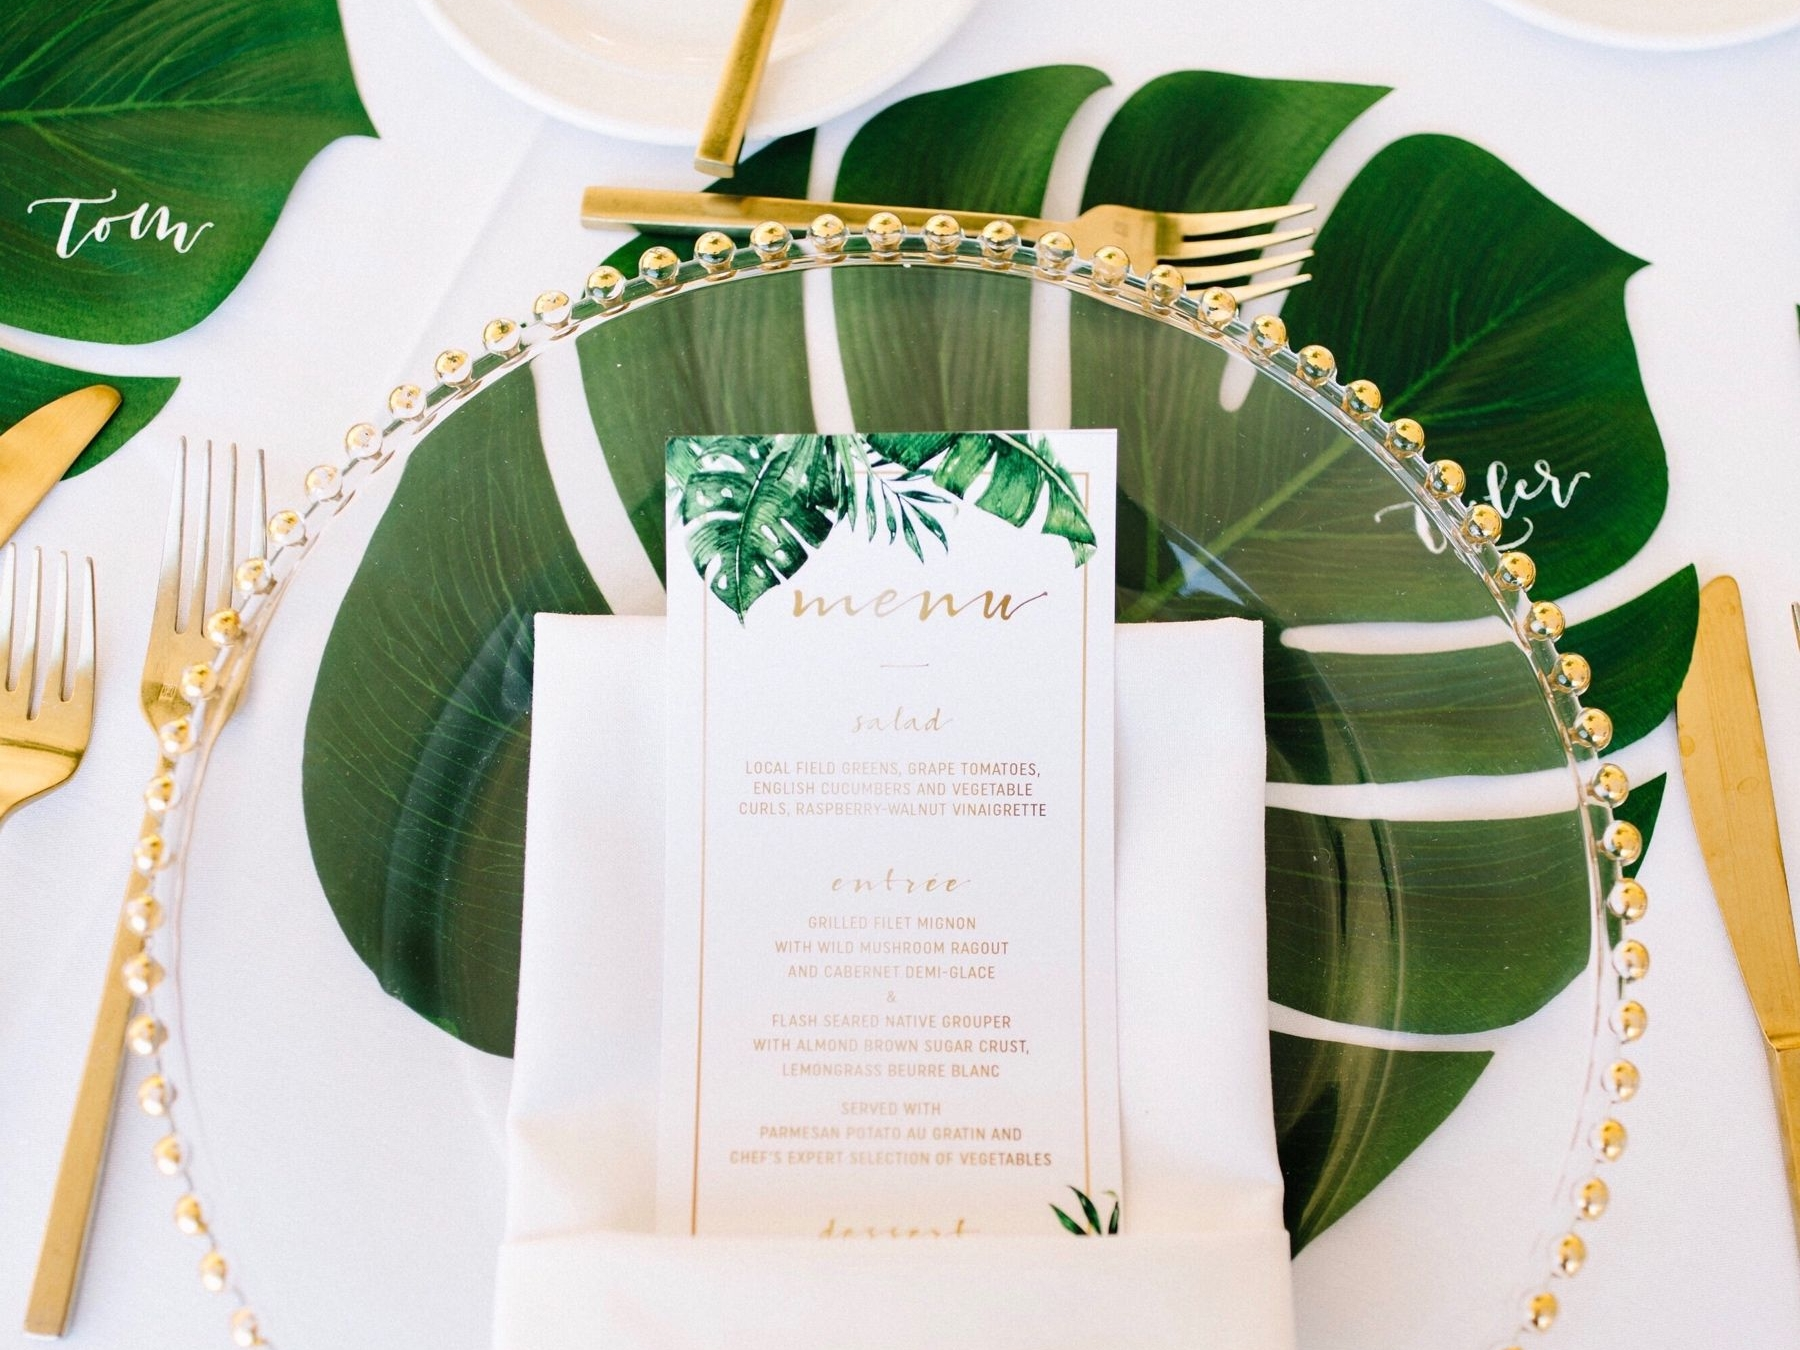 DAY-OF-DETAILS - Alright, invites are mailed out! Now what about those day-of-details and extras? Like menus, programs, placecards, and more. I've got you covered with matching designs!